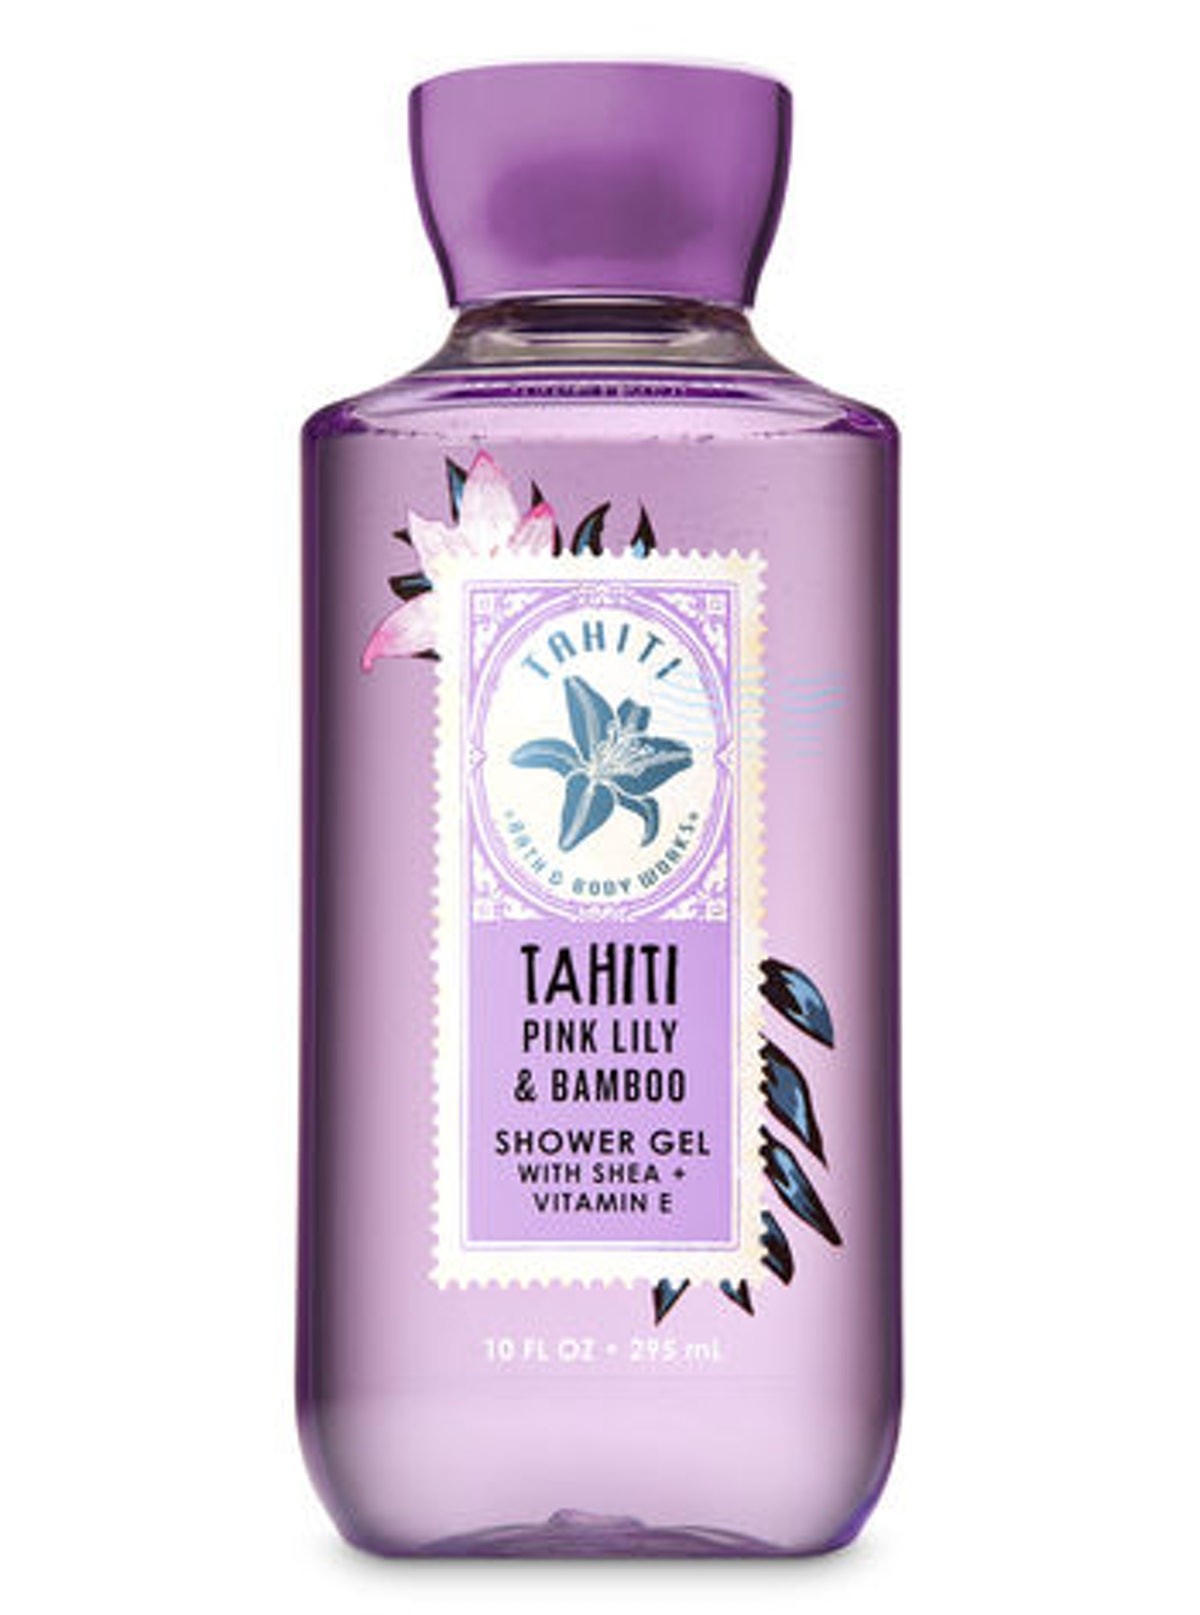 PINK LILY & BAMBOO Shower Gel